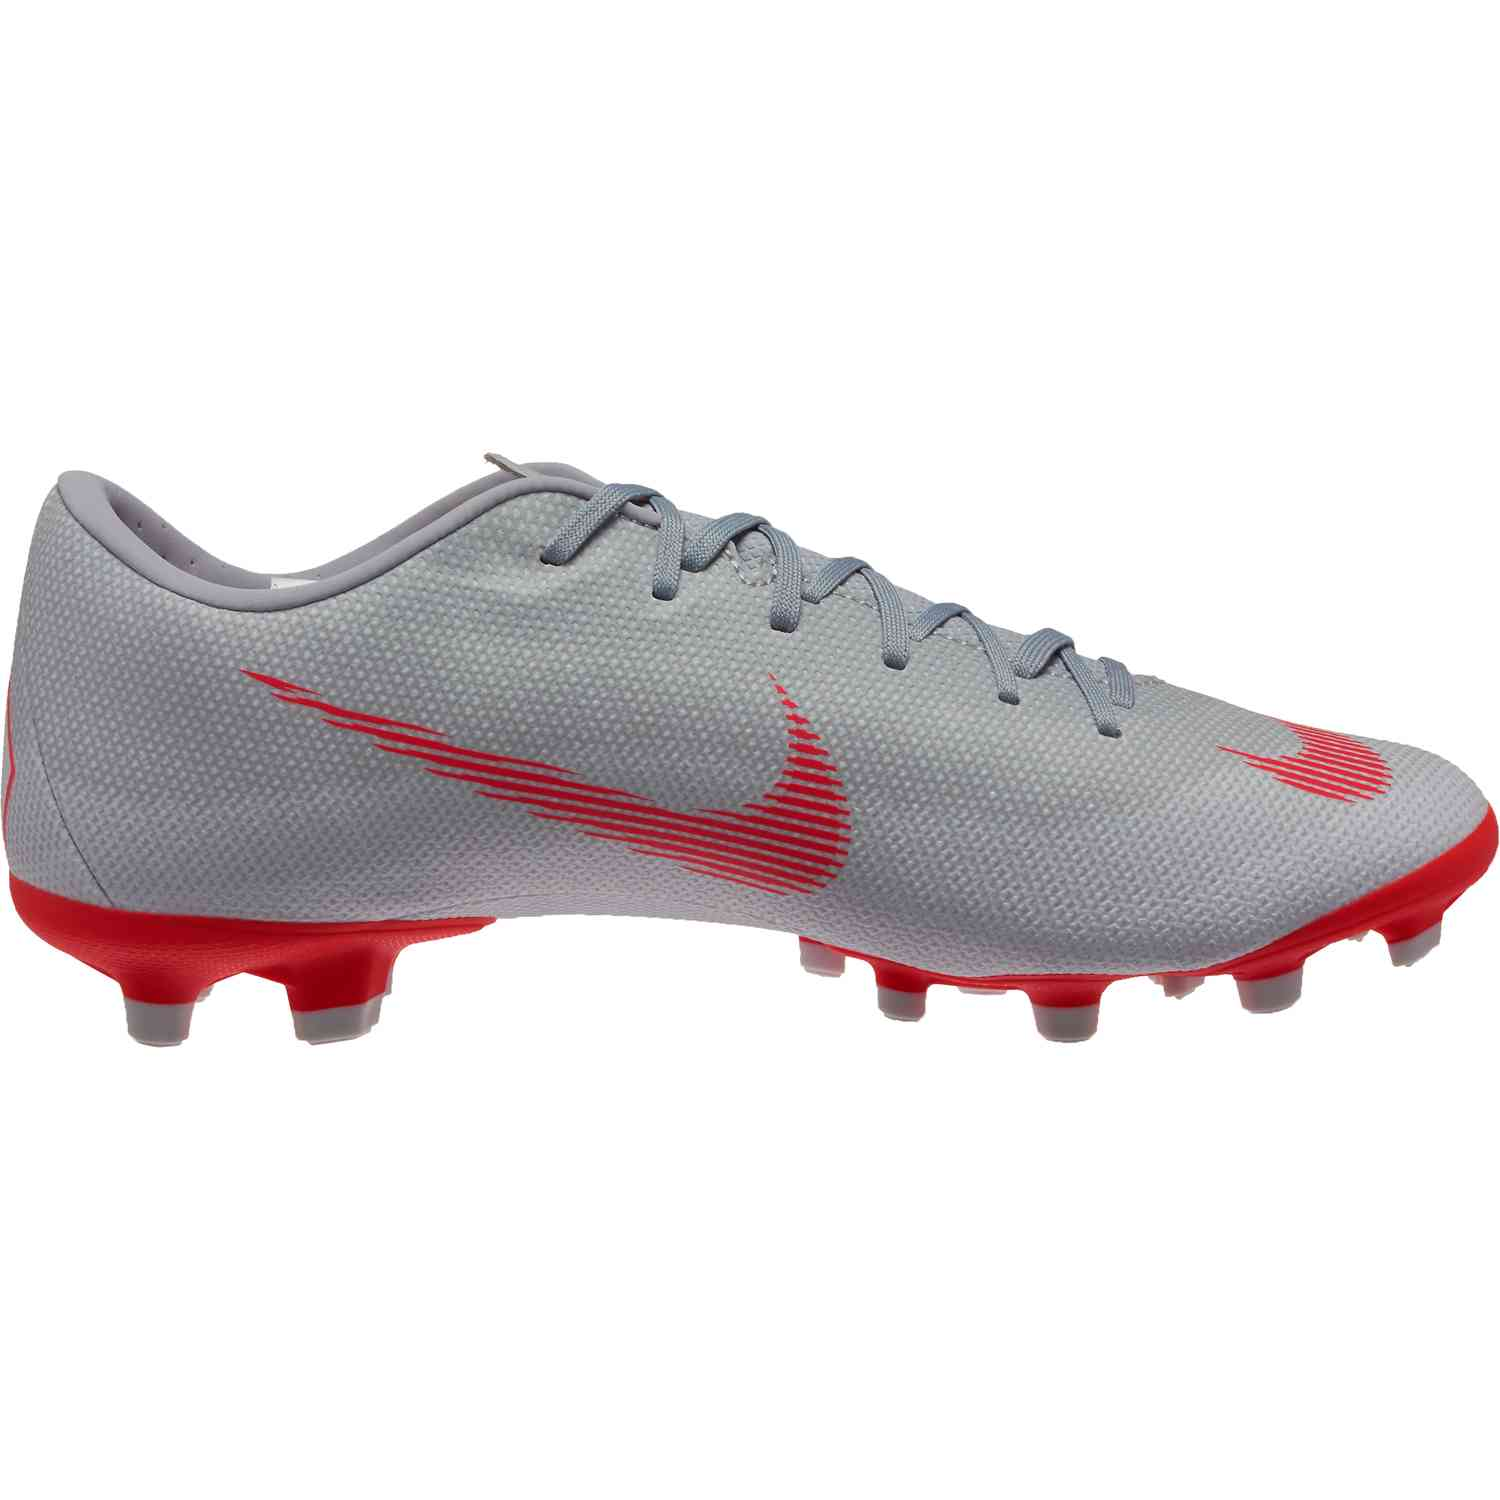 0ec3584147c Nike Vapor 12 Academy MG - Wolf Grey Bright Crimson Pure Platinum ...